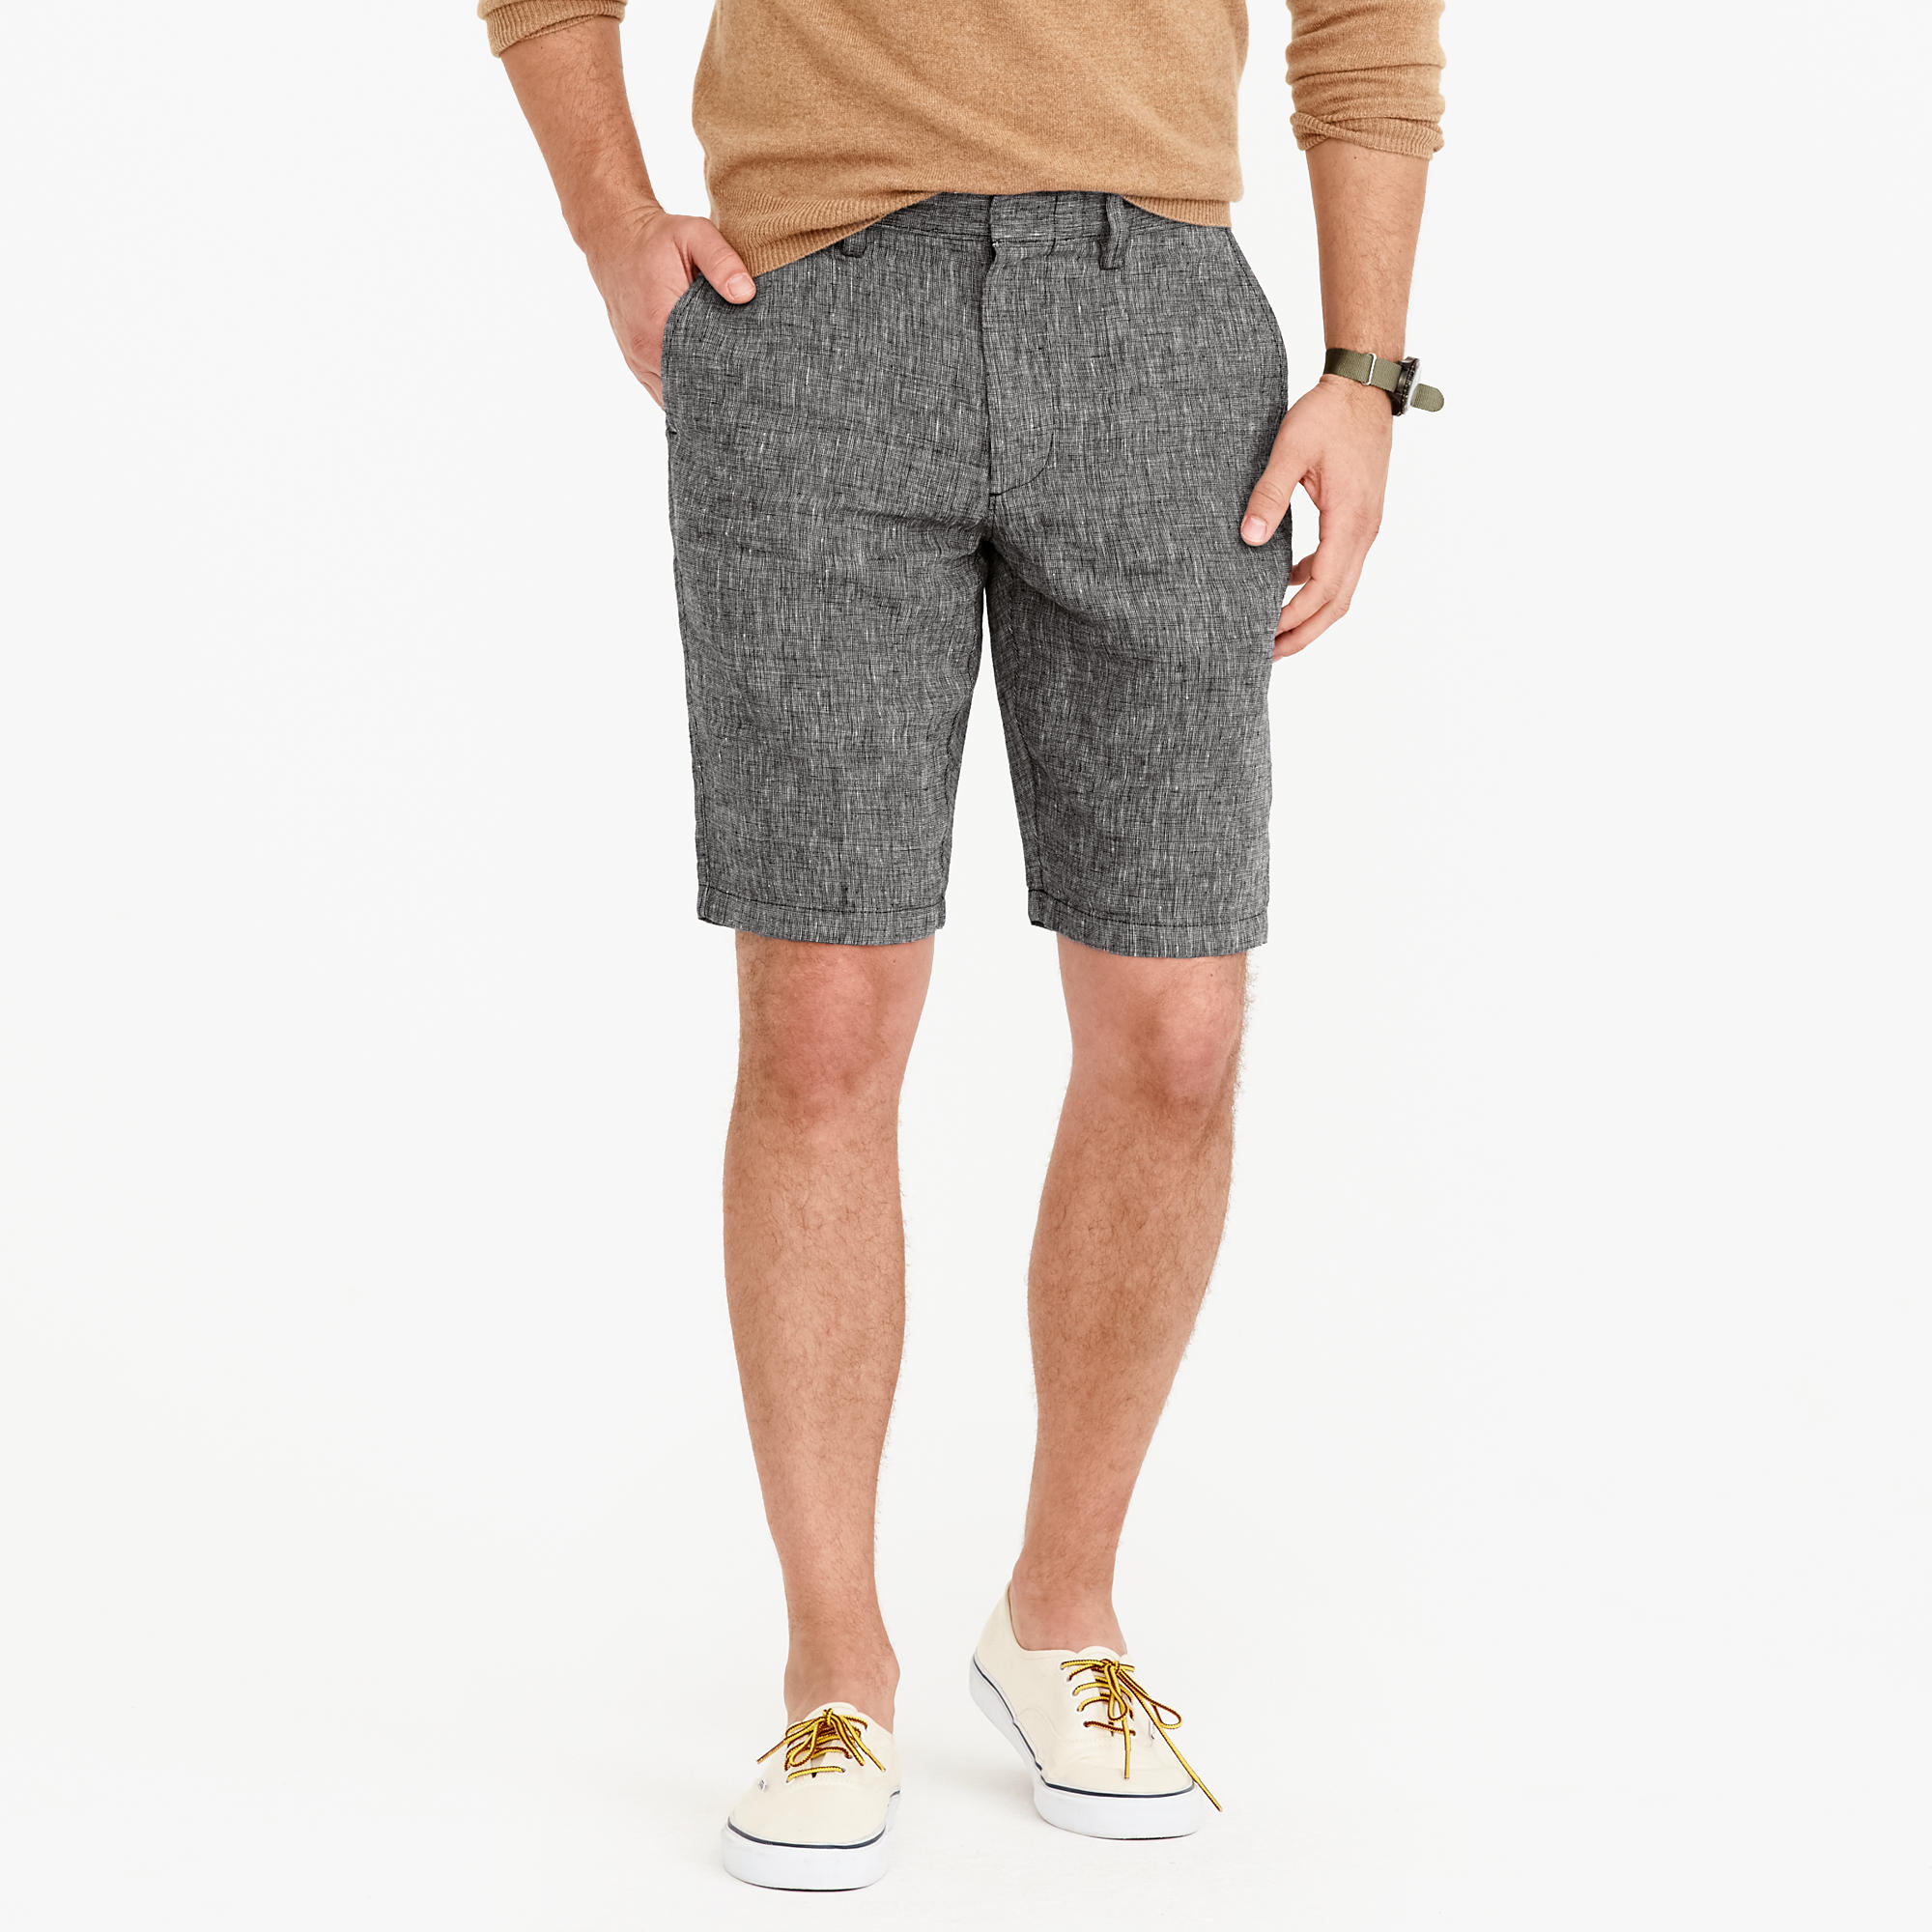 Men's Shorts : Club, Chino & More | J.Crew